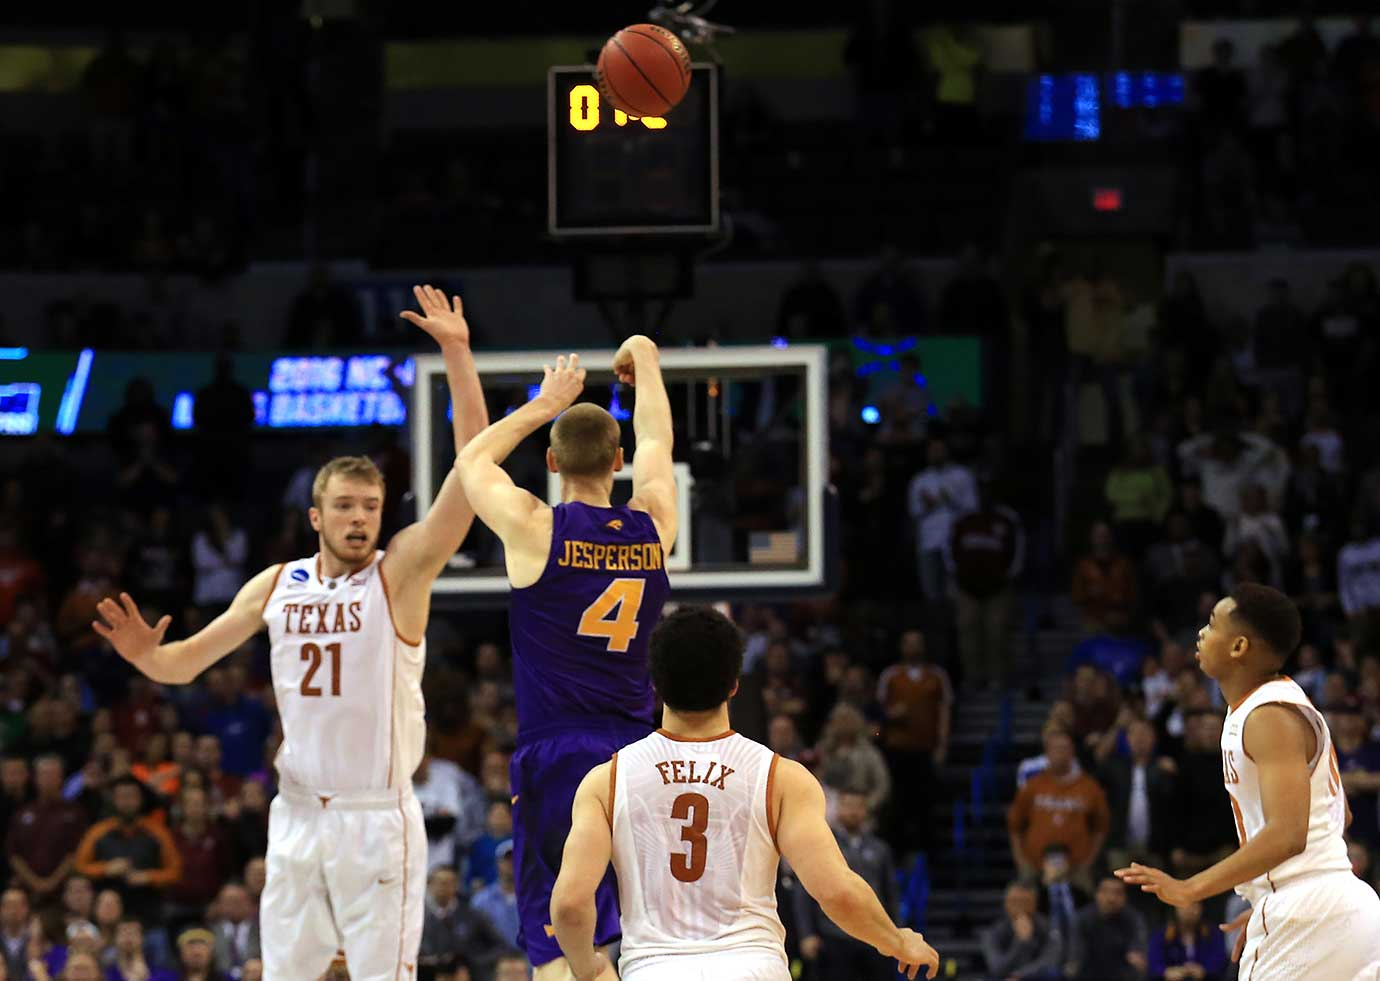 Here are some of the images that caught our eye on an upset-laden day in the NCAA Tournament, including Paul Jesperson of the Northern Iowa Panthers hitting a half court three-pointer at the buzzer to defeat the Texas Longhorns 75-72.